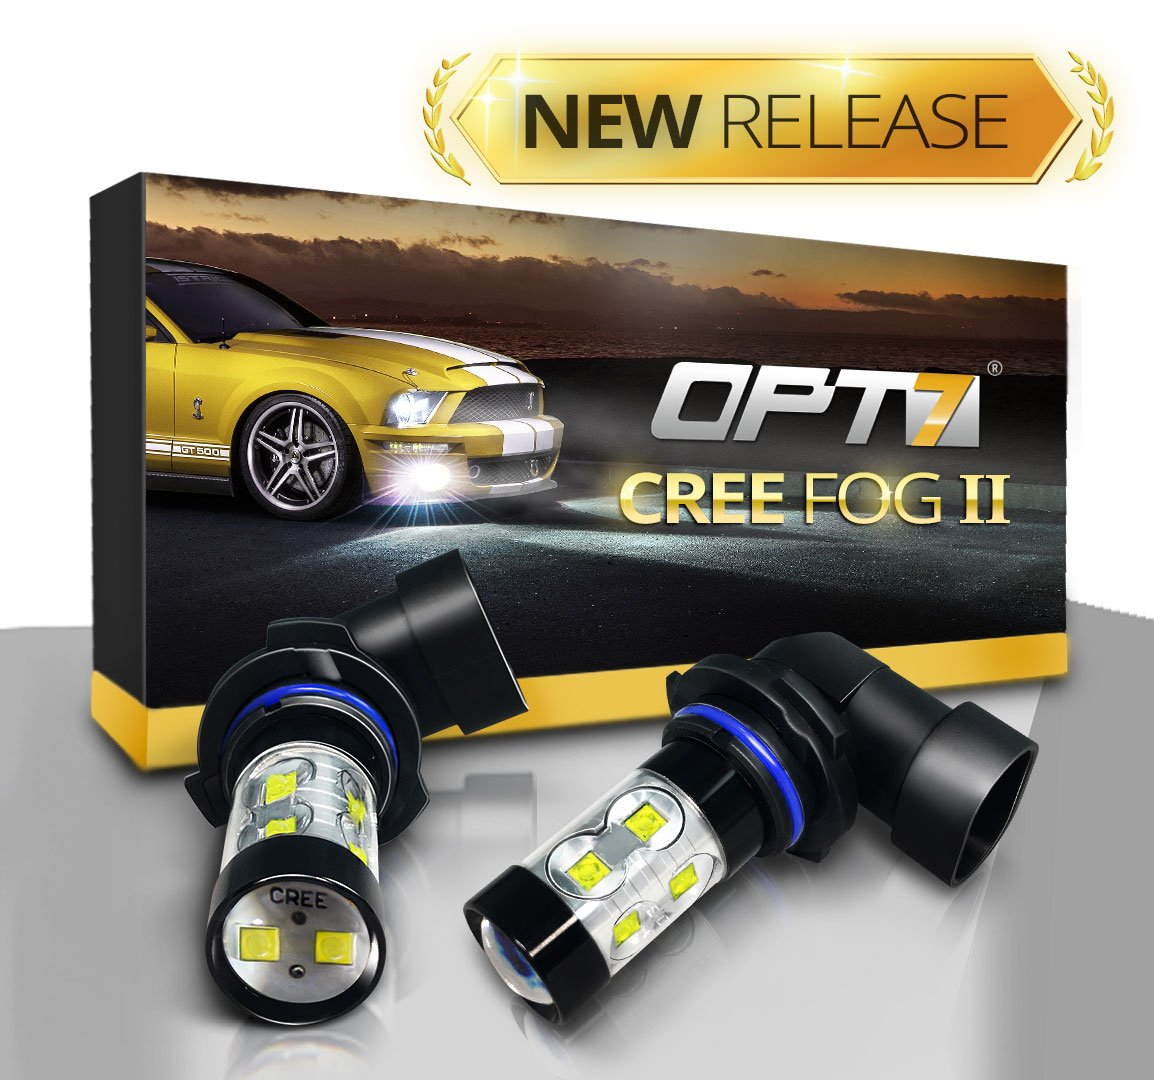 OPT7 H10 (9145 9140 9040) CREE XLamp